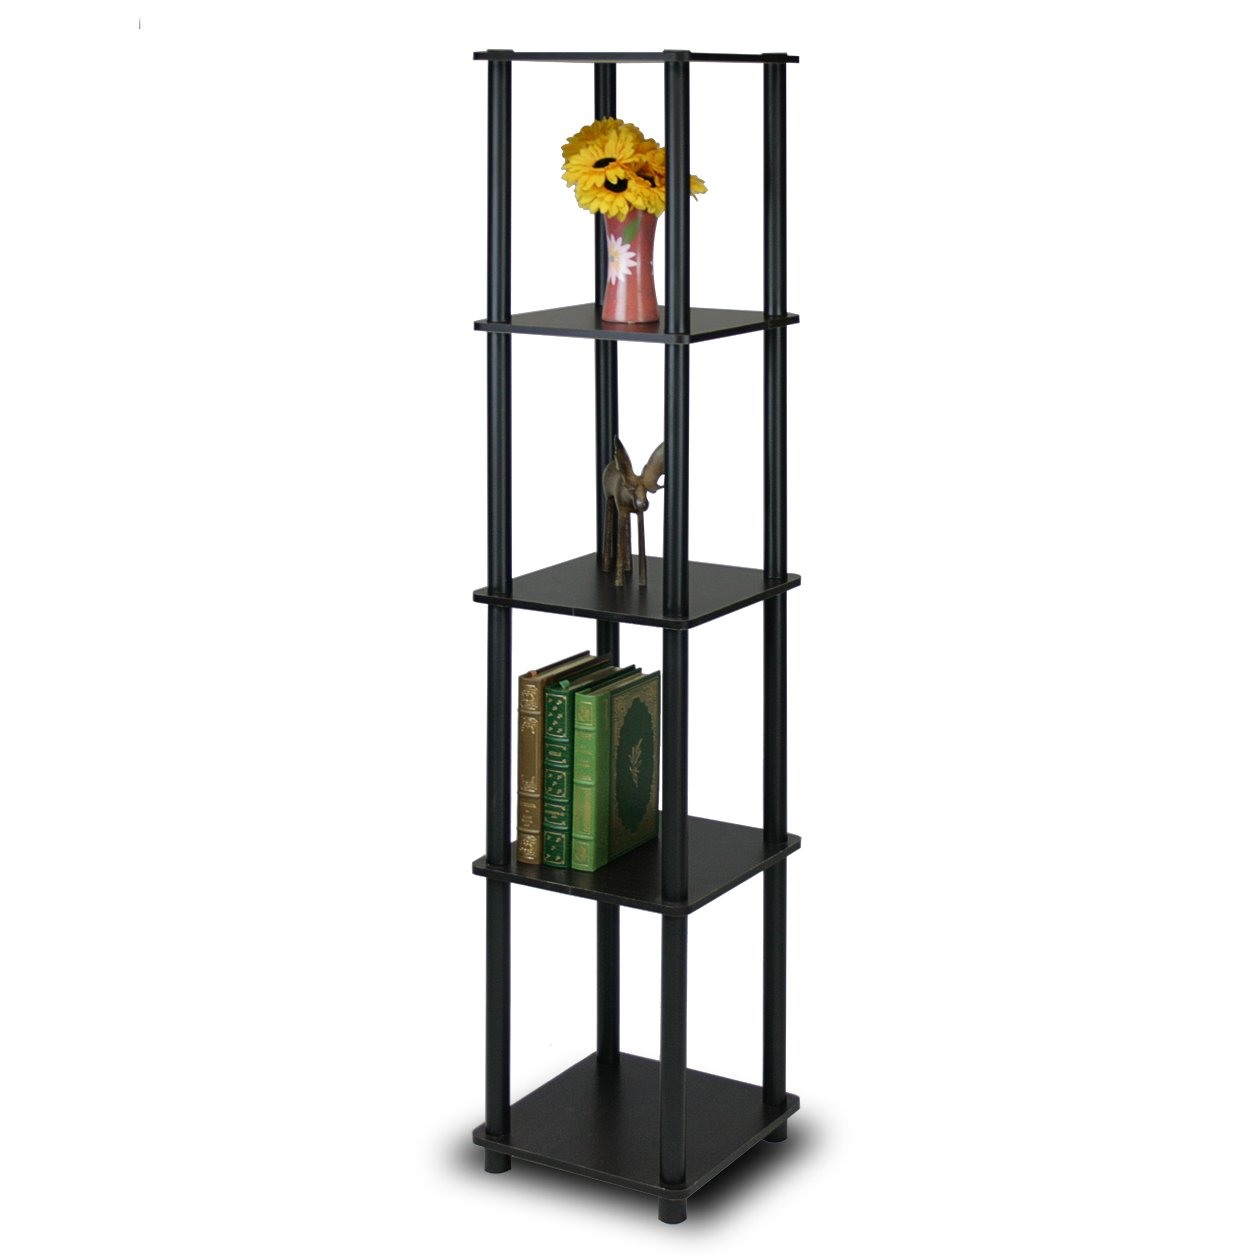 Furinno 18033EX/BK Turn-N-Tube Rack Classic, Espresso/Black